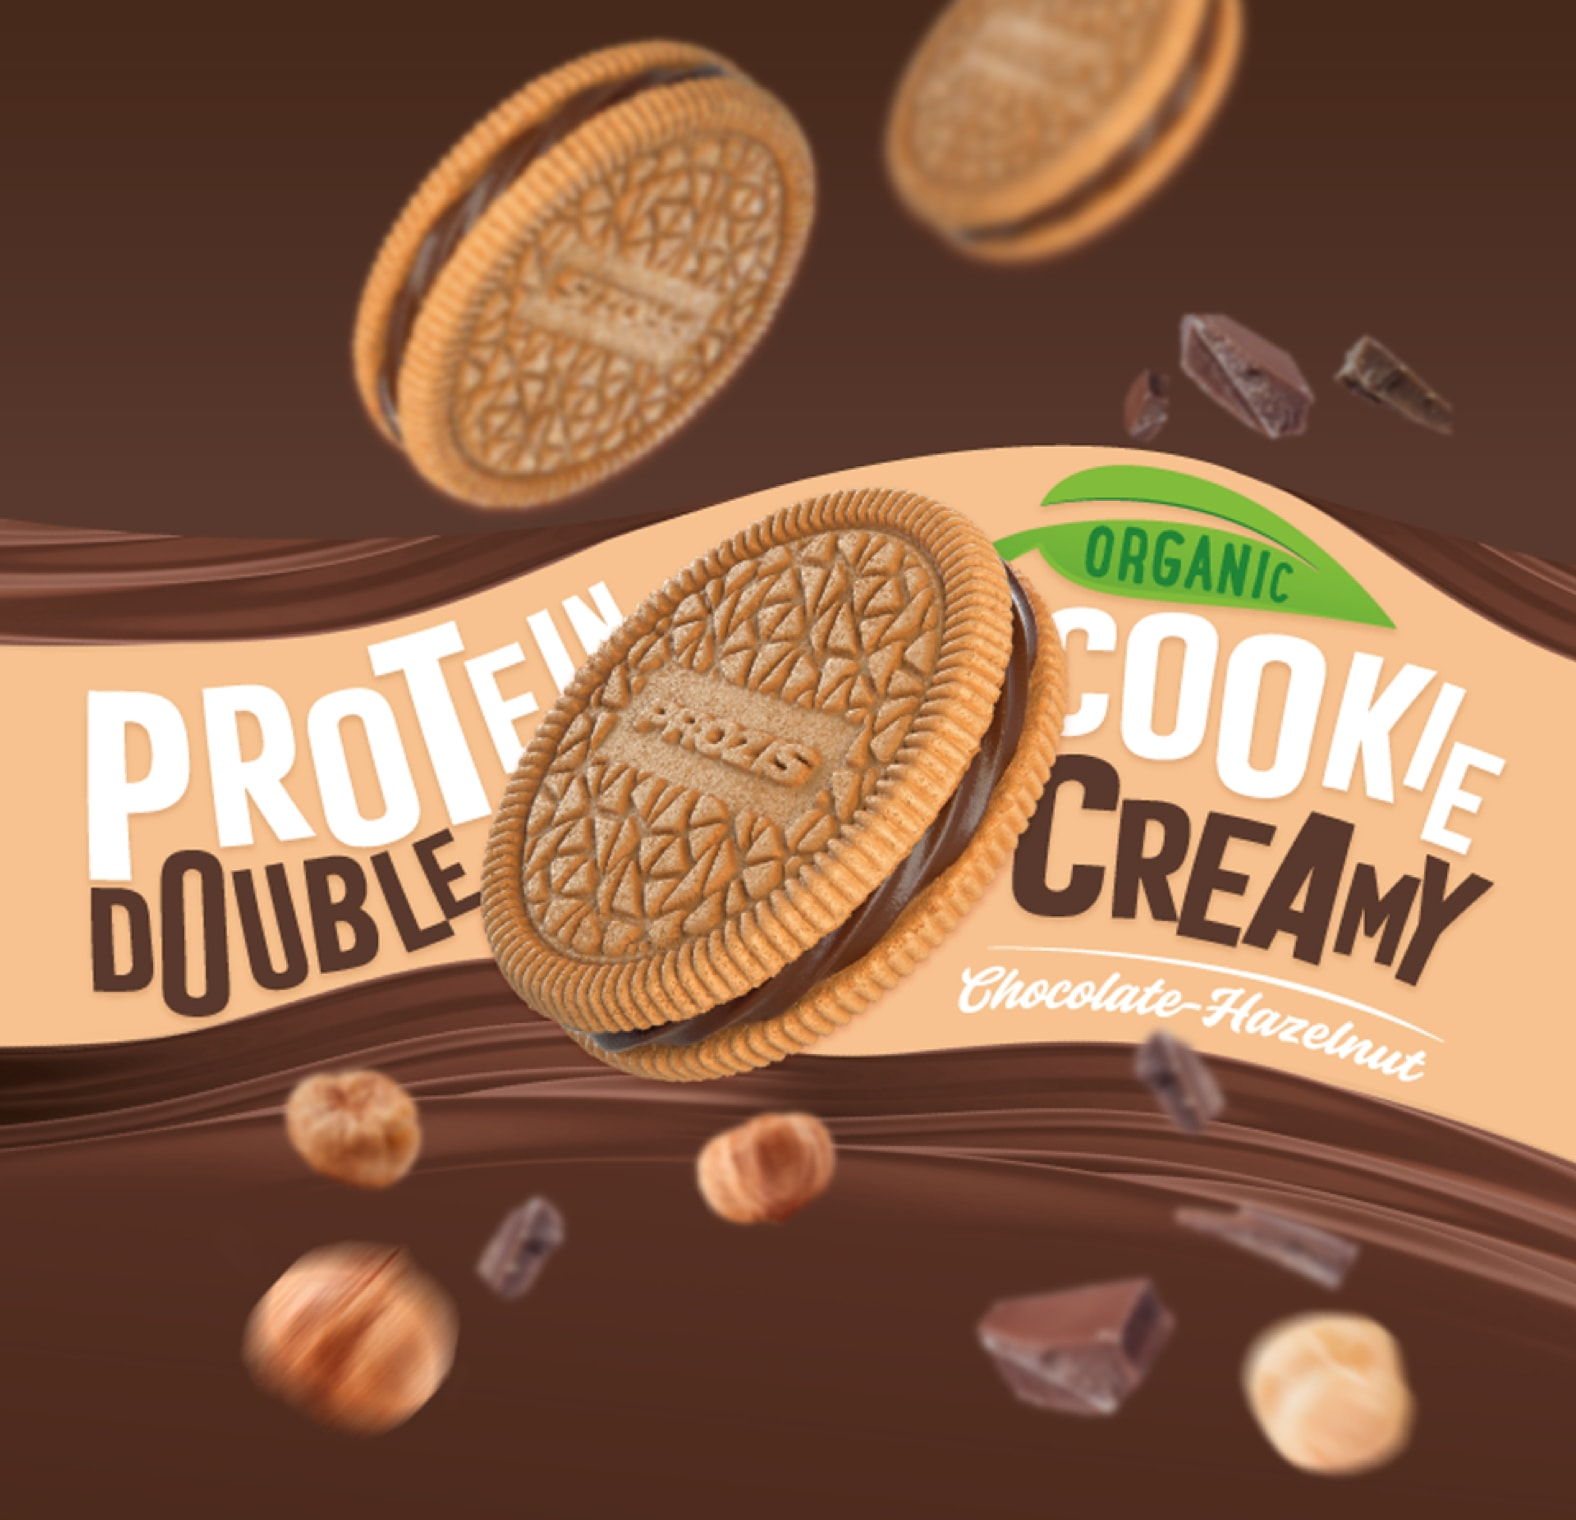 Prozis Double Creamy Protein Cookie